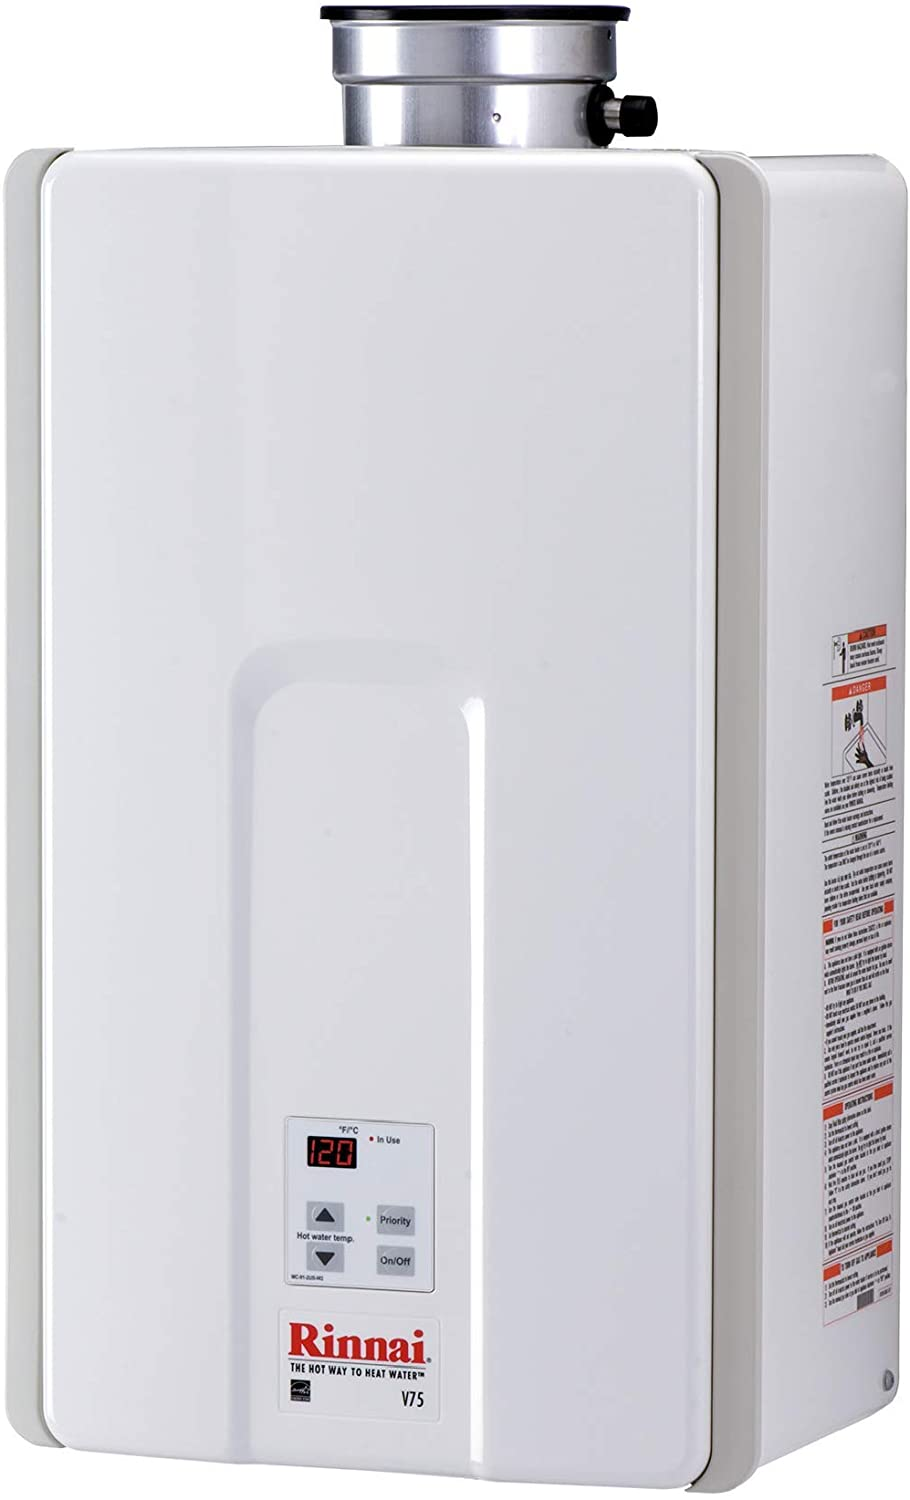 Rinnai V75IN Indoor Tankless Hot Water Heater